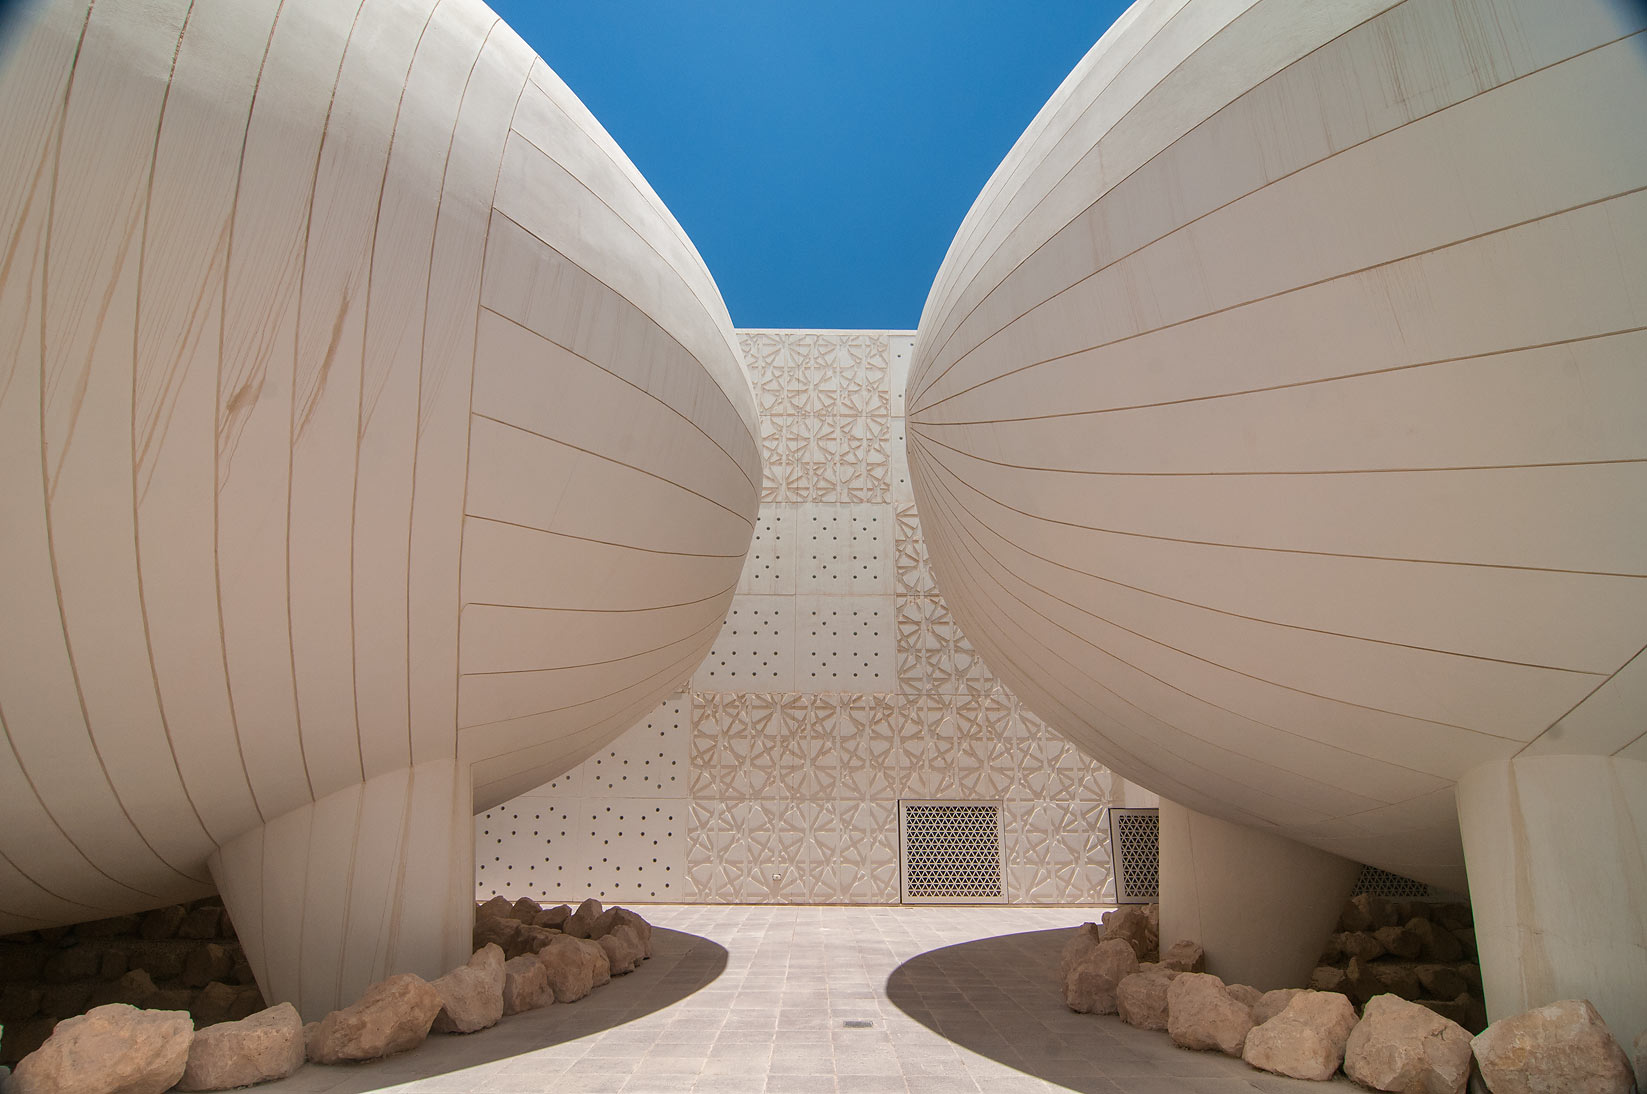 Ovoid lecture halls of Weill Cornell Medical College in Education City campus. Doha, Qatar